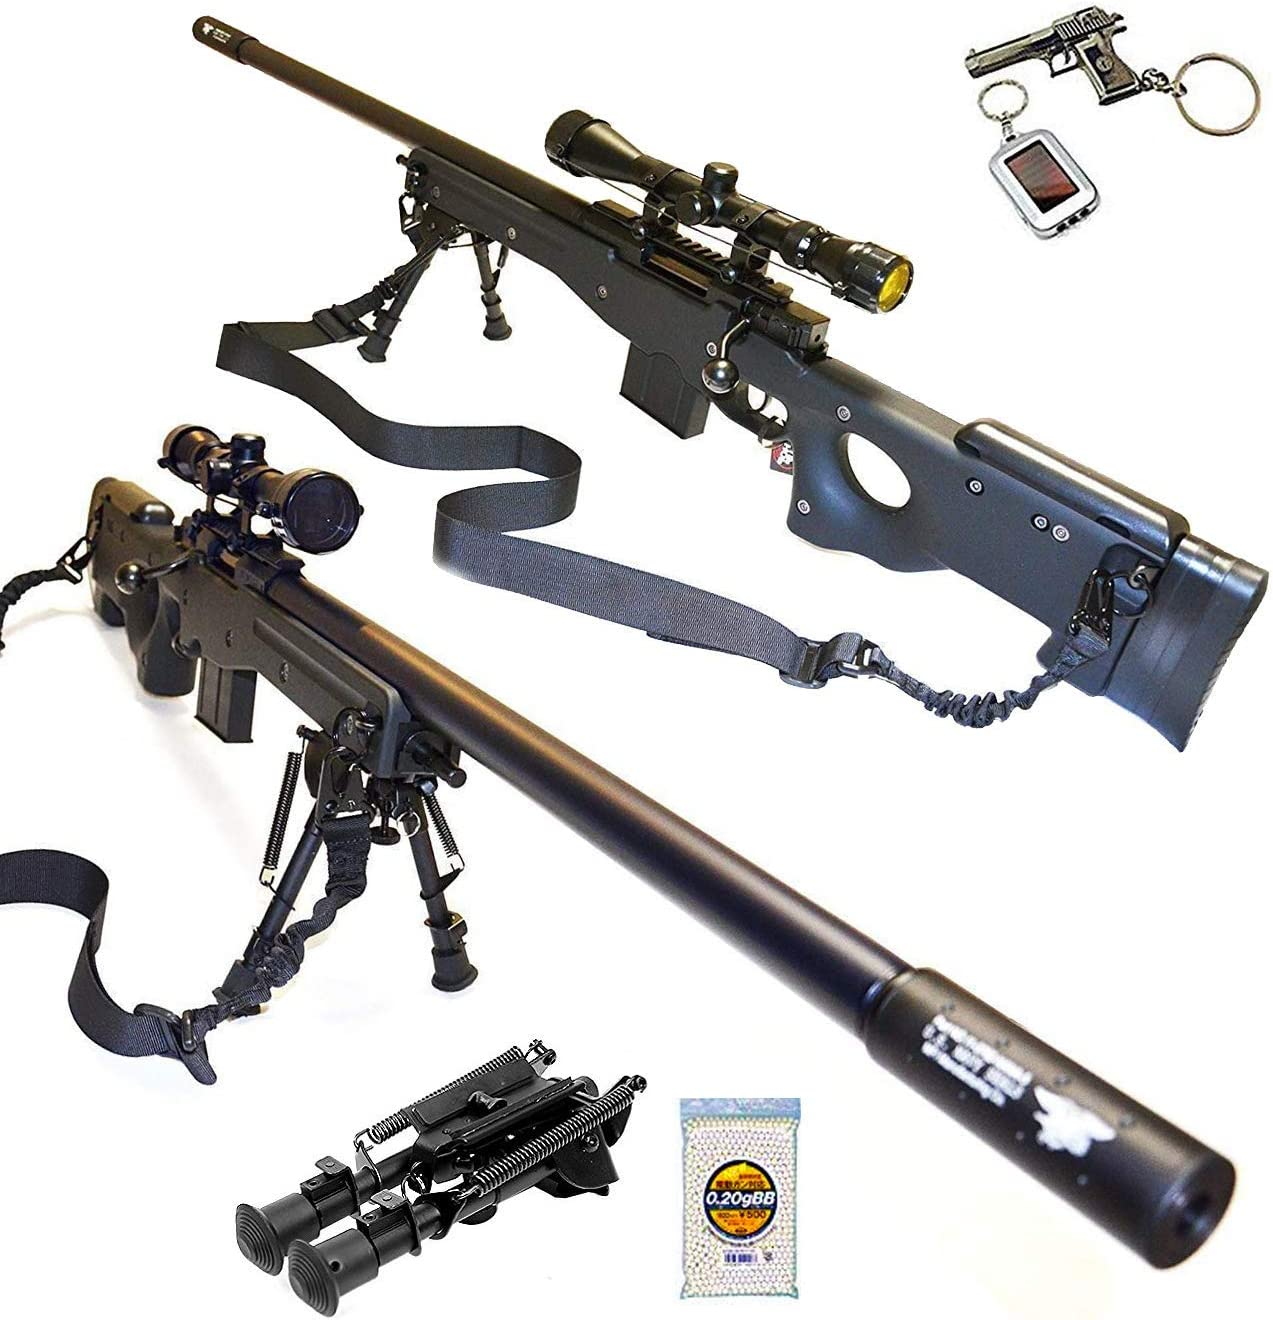 Tokyo Marui bolt action spare magazine for air rifle M40A5 Japan Import